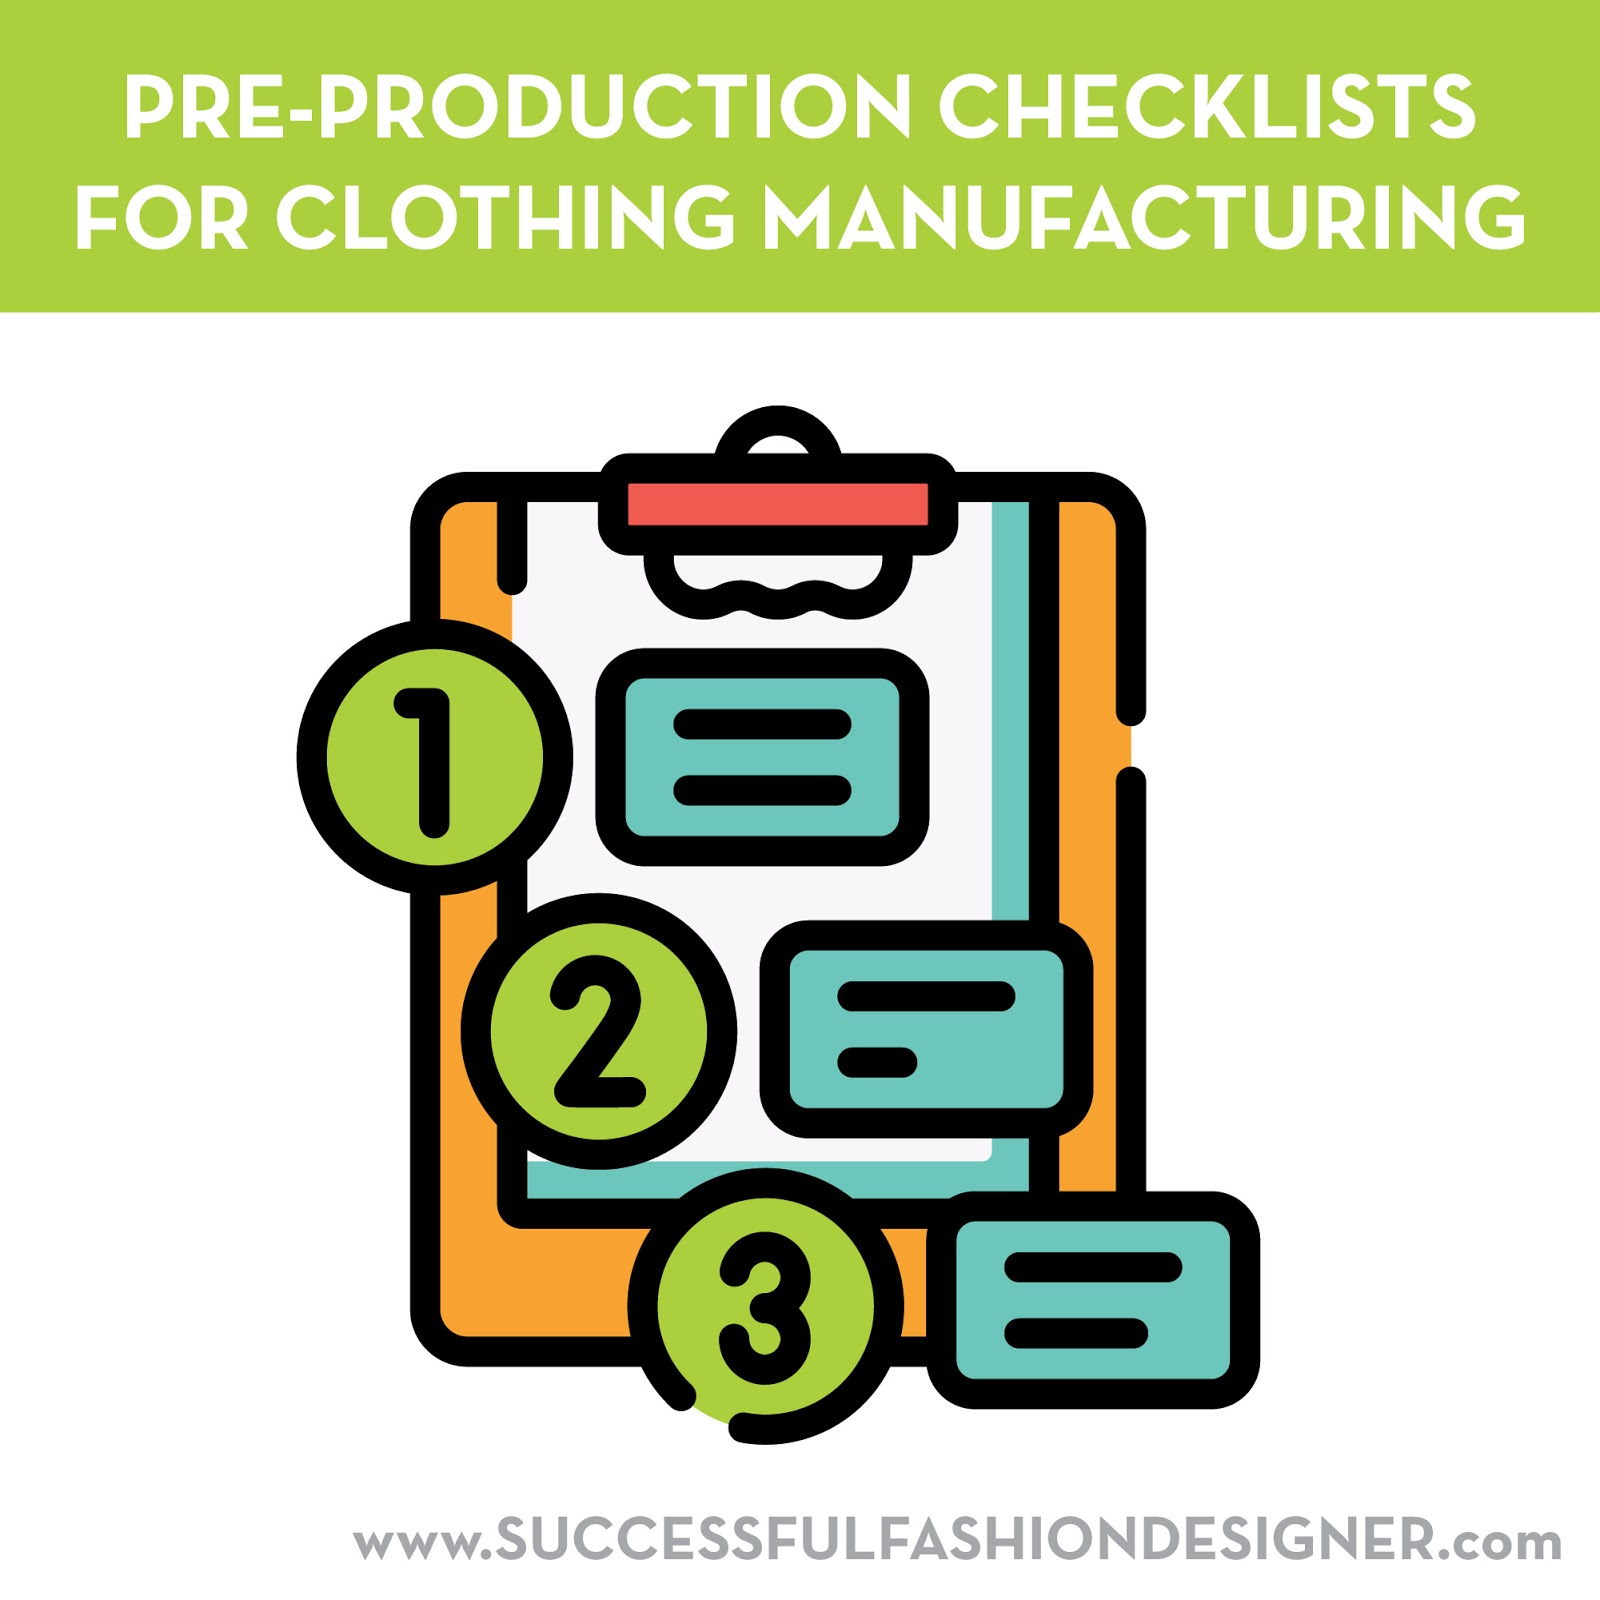 sew heidi pre production checkilsts for clothing manufacturing